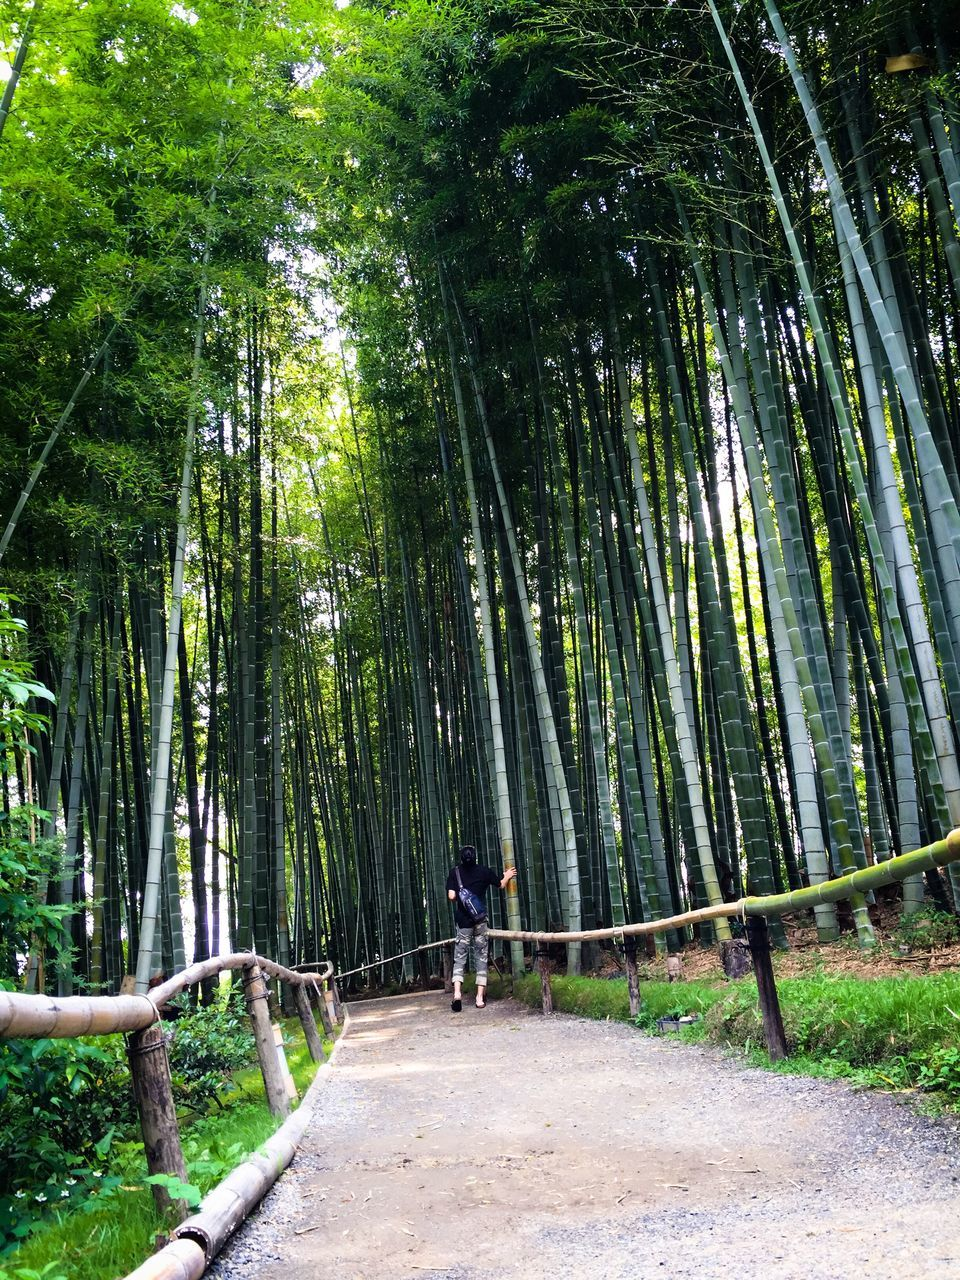 tree, bamboo grove, forest, nature, bamboo - plant, outdoors, day, real people, one person, beauty in nature, growth, walking, tranquil scene, tranquility, scenics, standing, full length, tree trunk, men, lifestyles, people